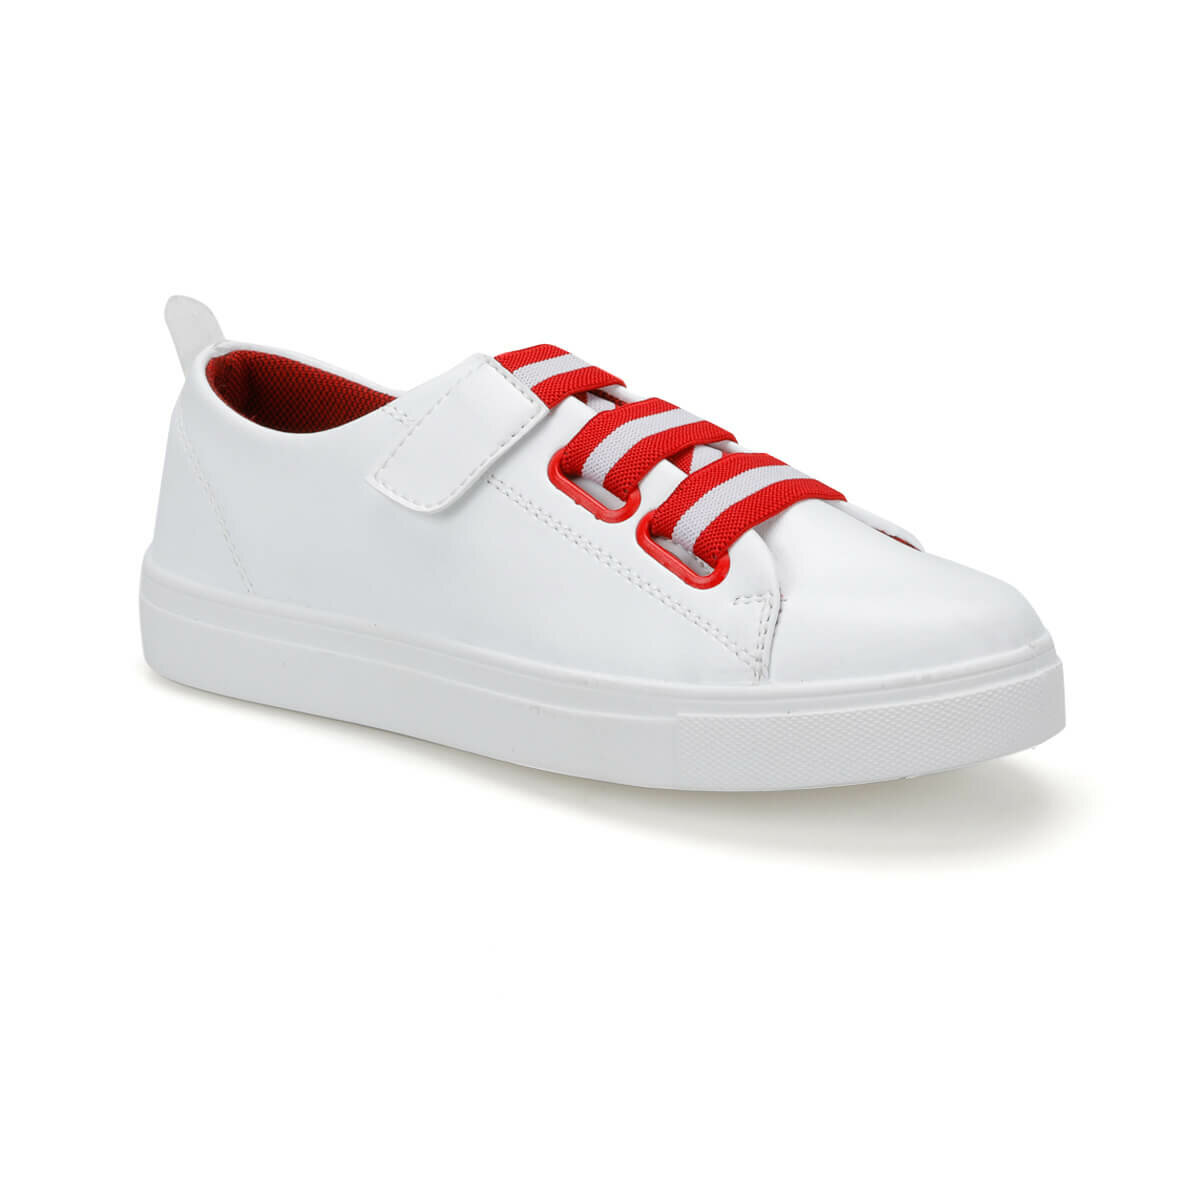 FLO CS19047 Red Women 'S Sneaker Shoes Art Bella